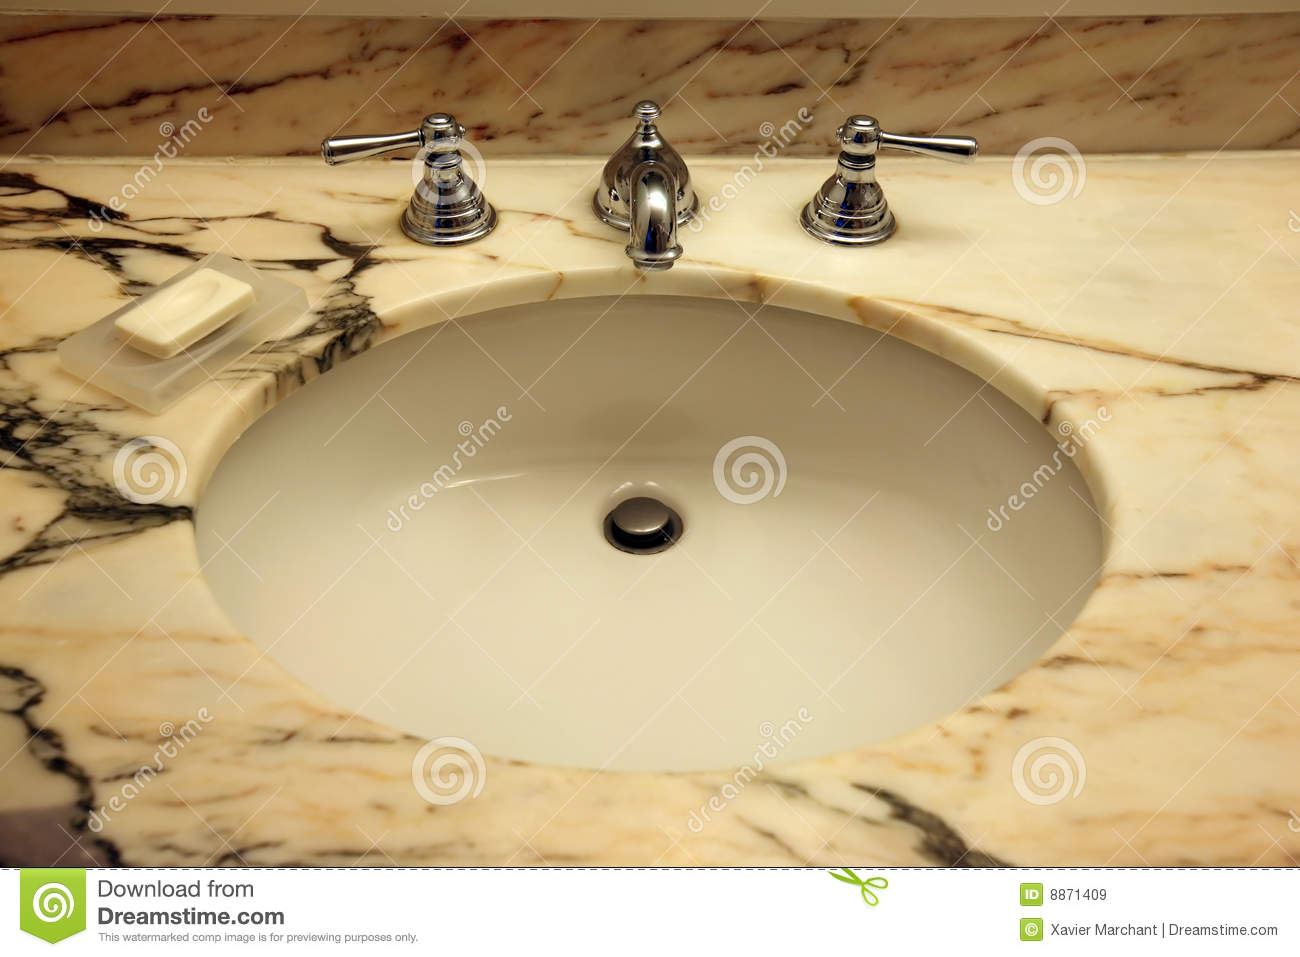 Marble top sink  Marble Top Sink Royalty Free Stock Images Image 8871409. Bathroom Sink With Marble Top